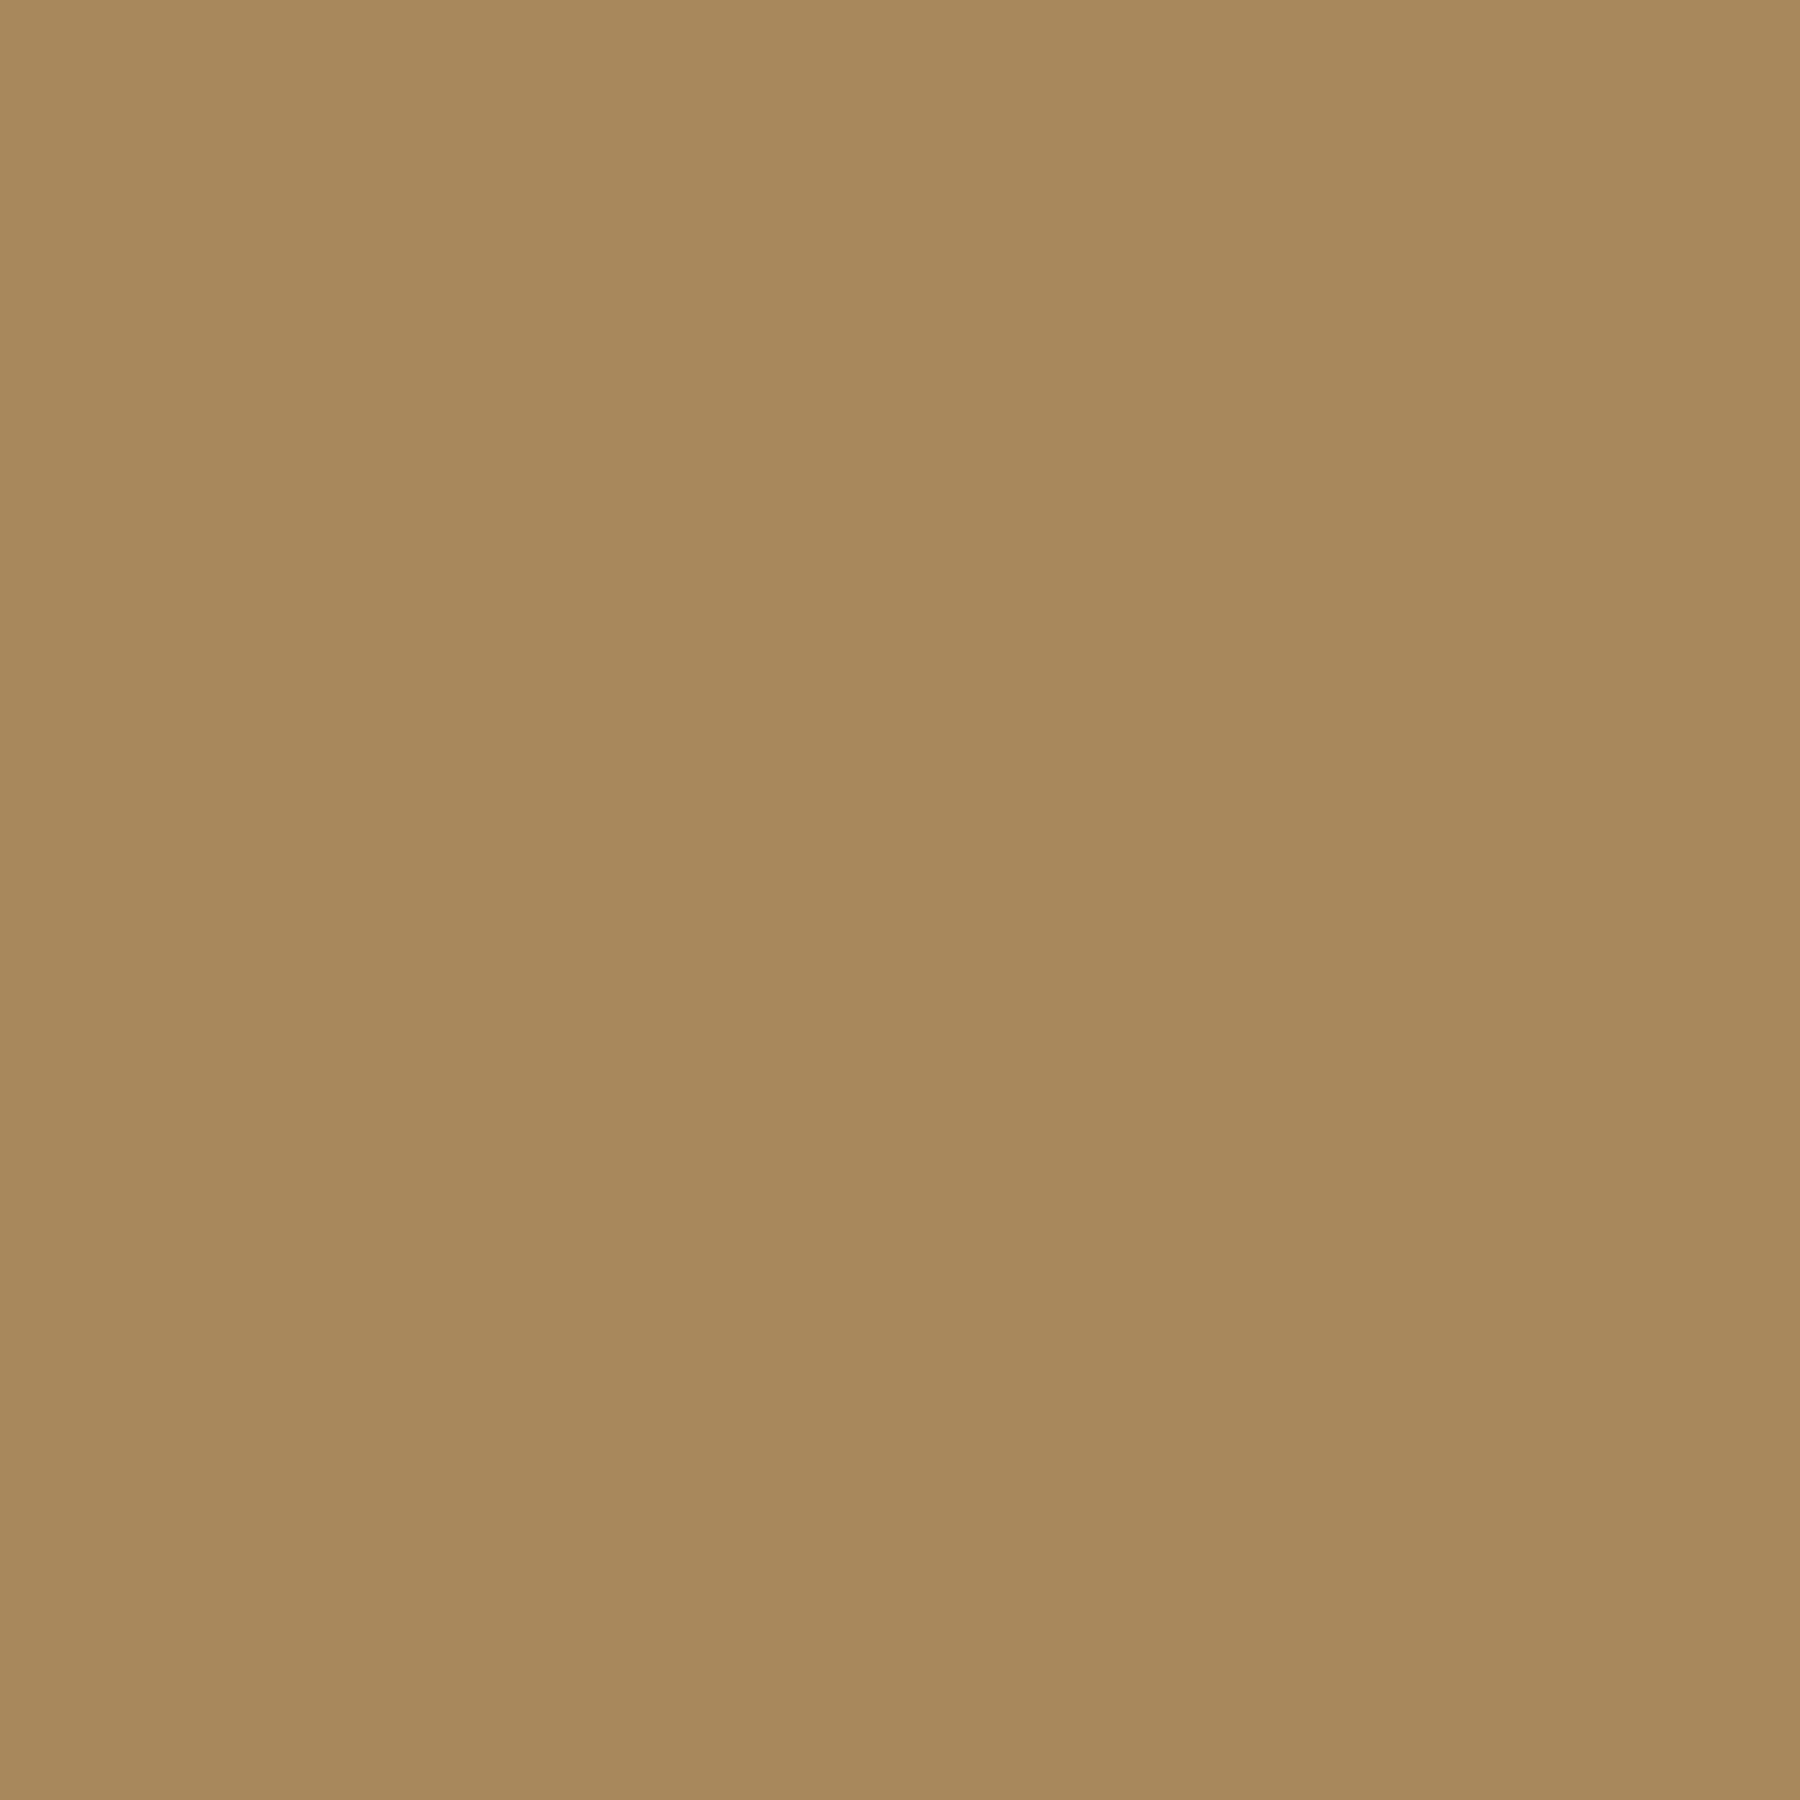 Light Brown - Oracal 651